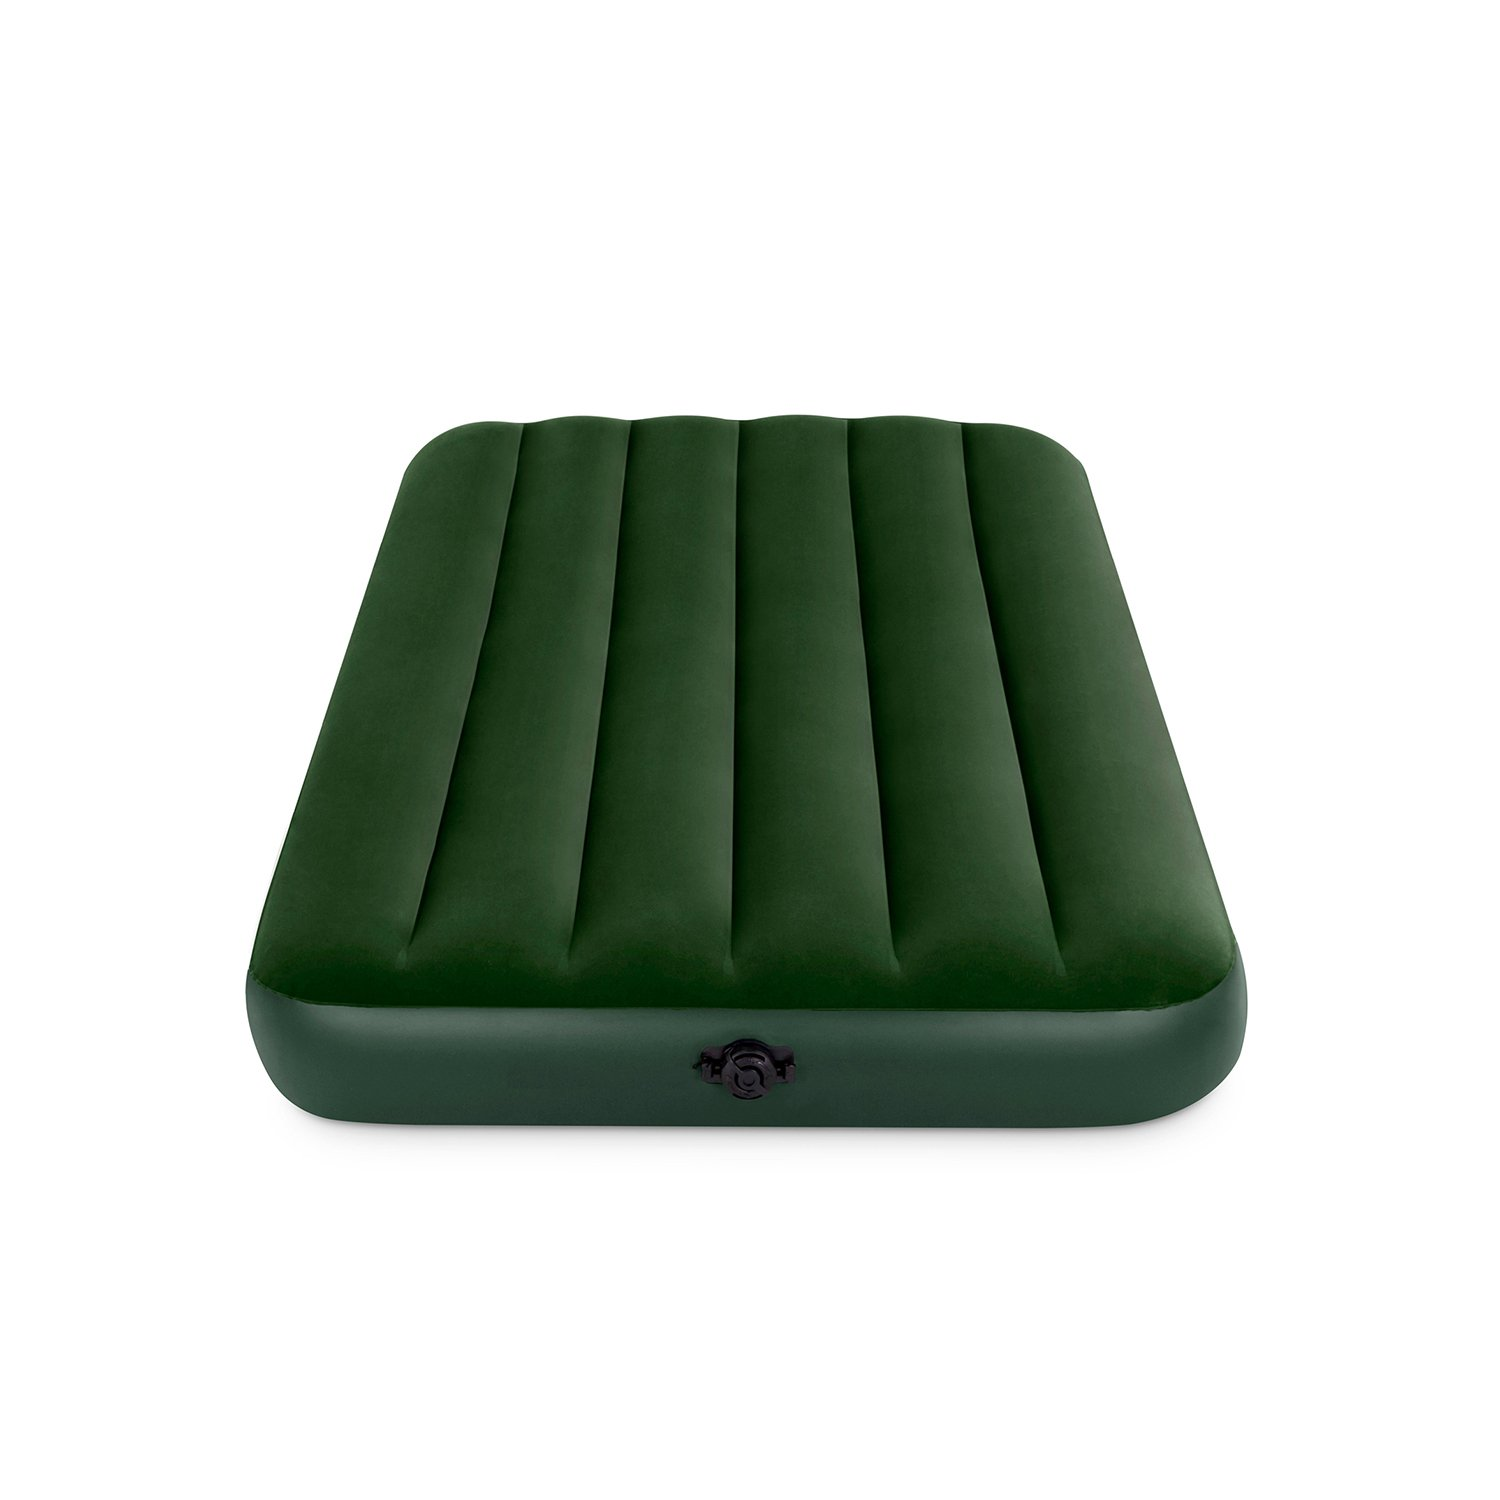 Superb Amazon Intex Prestige Downy Airbed Kit with Hand Held Battery Pump Twin Camping Air Mattresses Sports u Outdoors